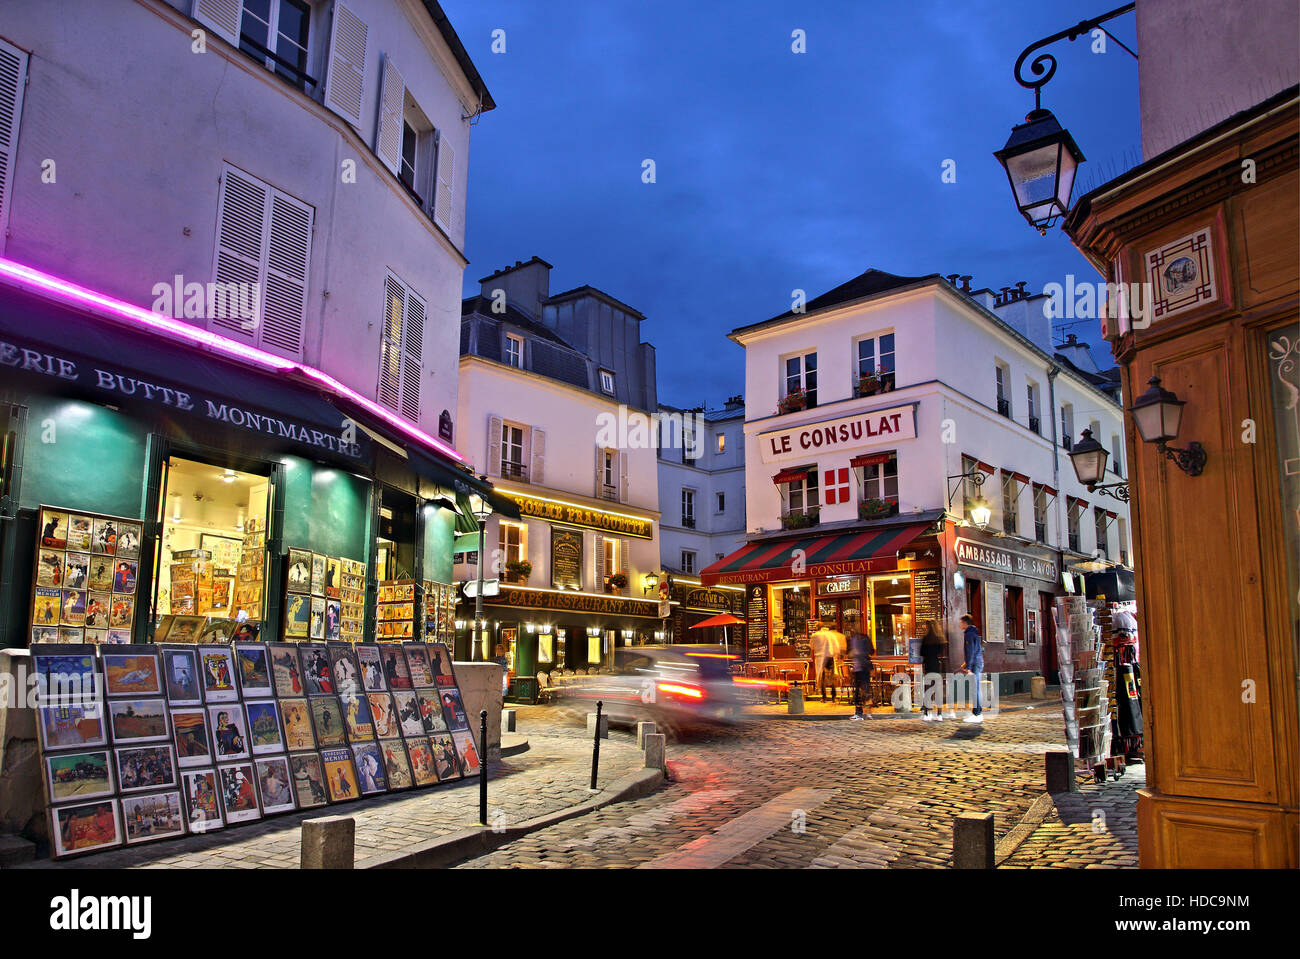 Walking in the picturesque alleys of the 'bohemian' neighborhood of Montmartre, Paris, France - Stock Image